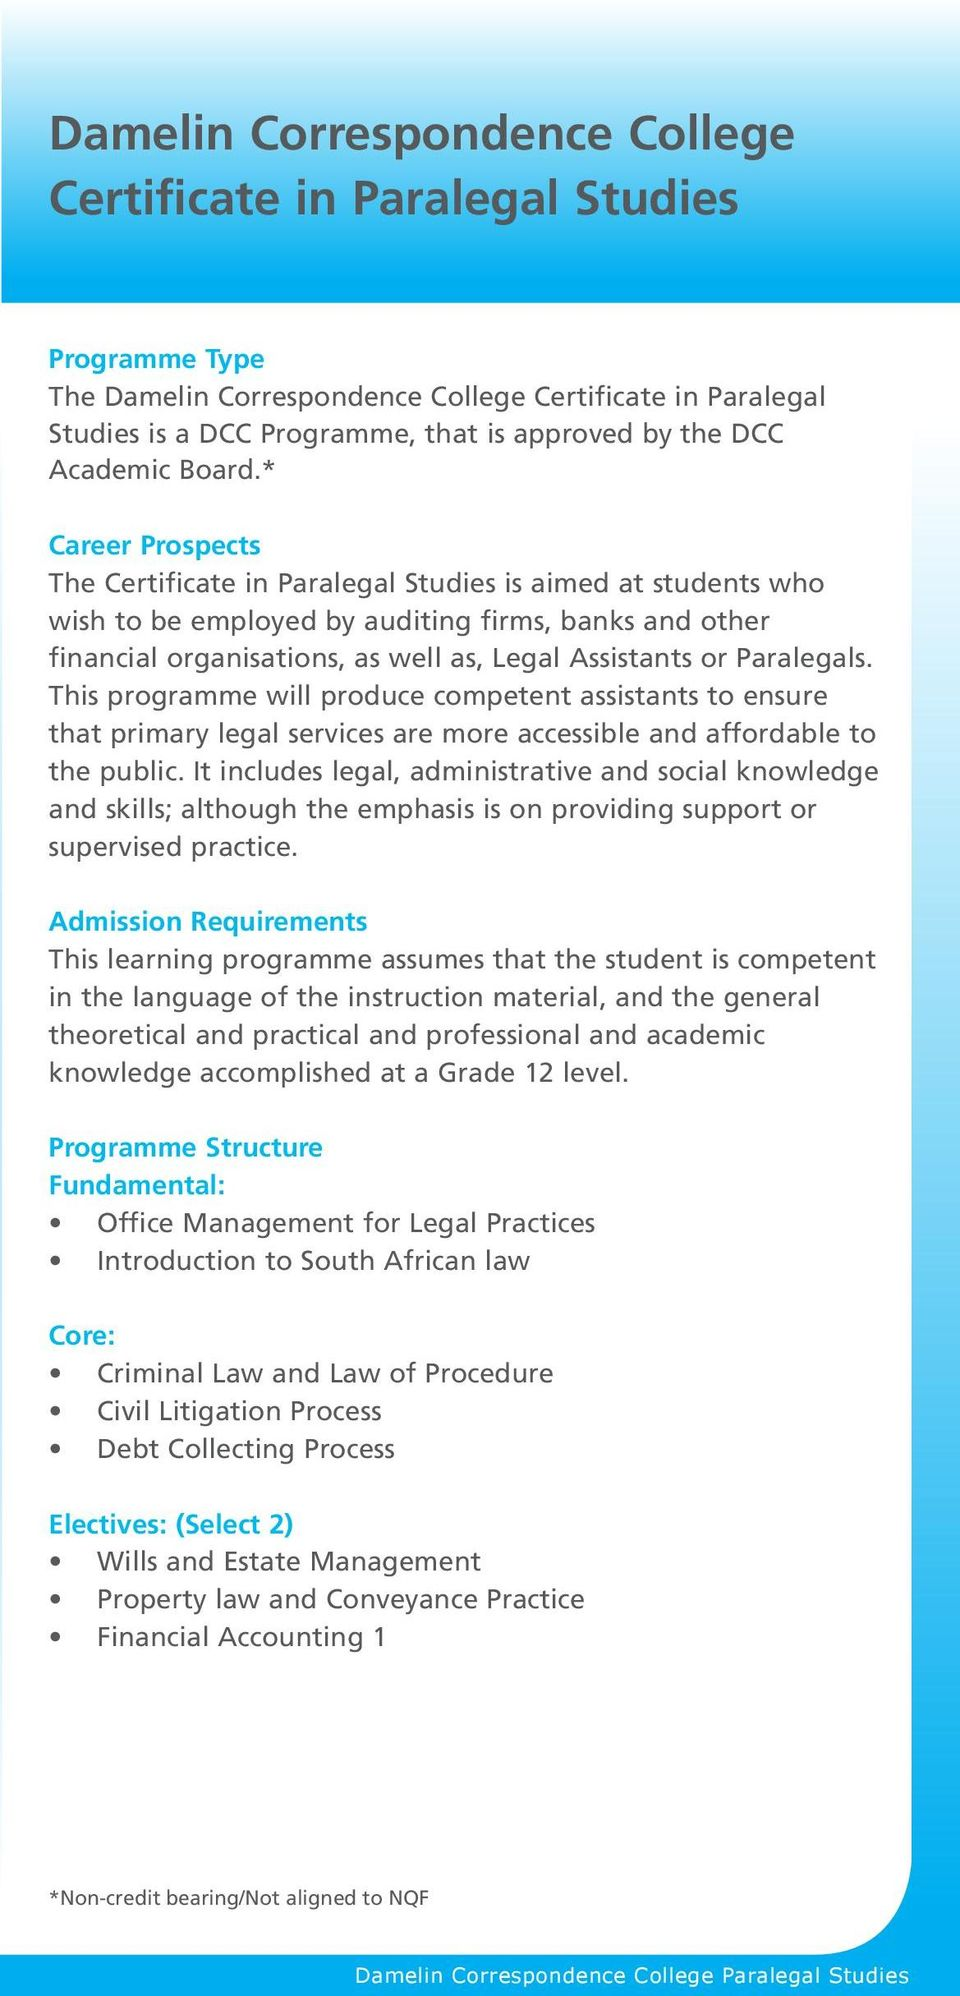 * Career Prospects The Certificate in Paralegal Studies is aimed at students who wish to be employed by auditing firms, banks and other financial organisations, as well as, Legal Assistants or